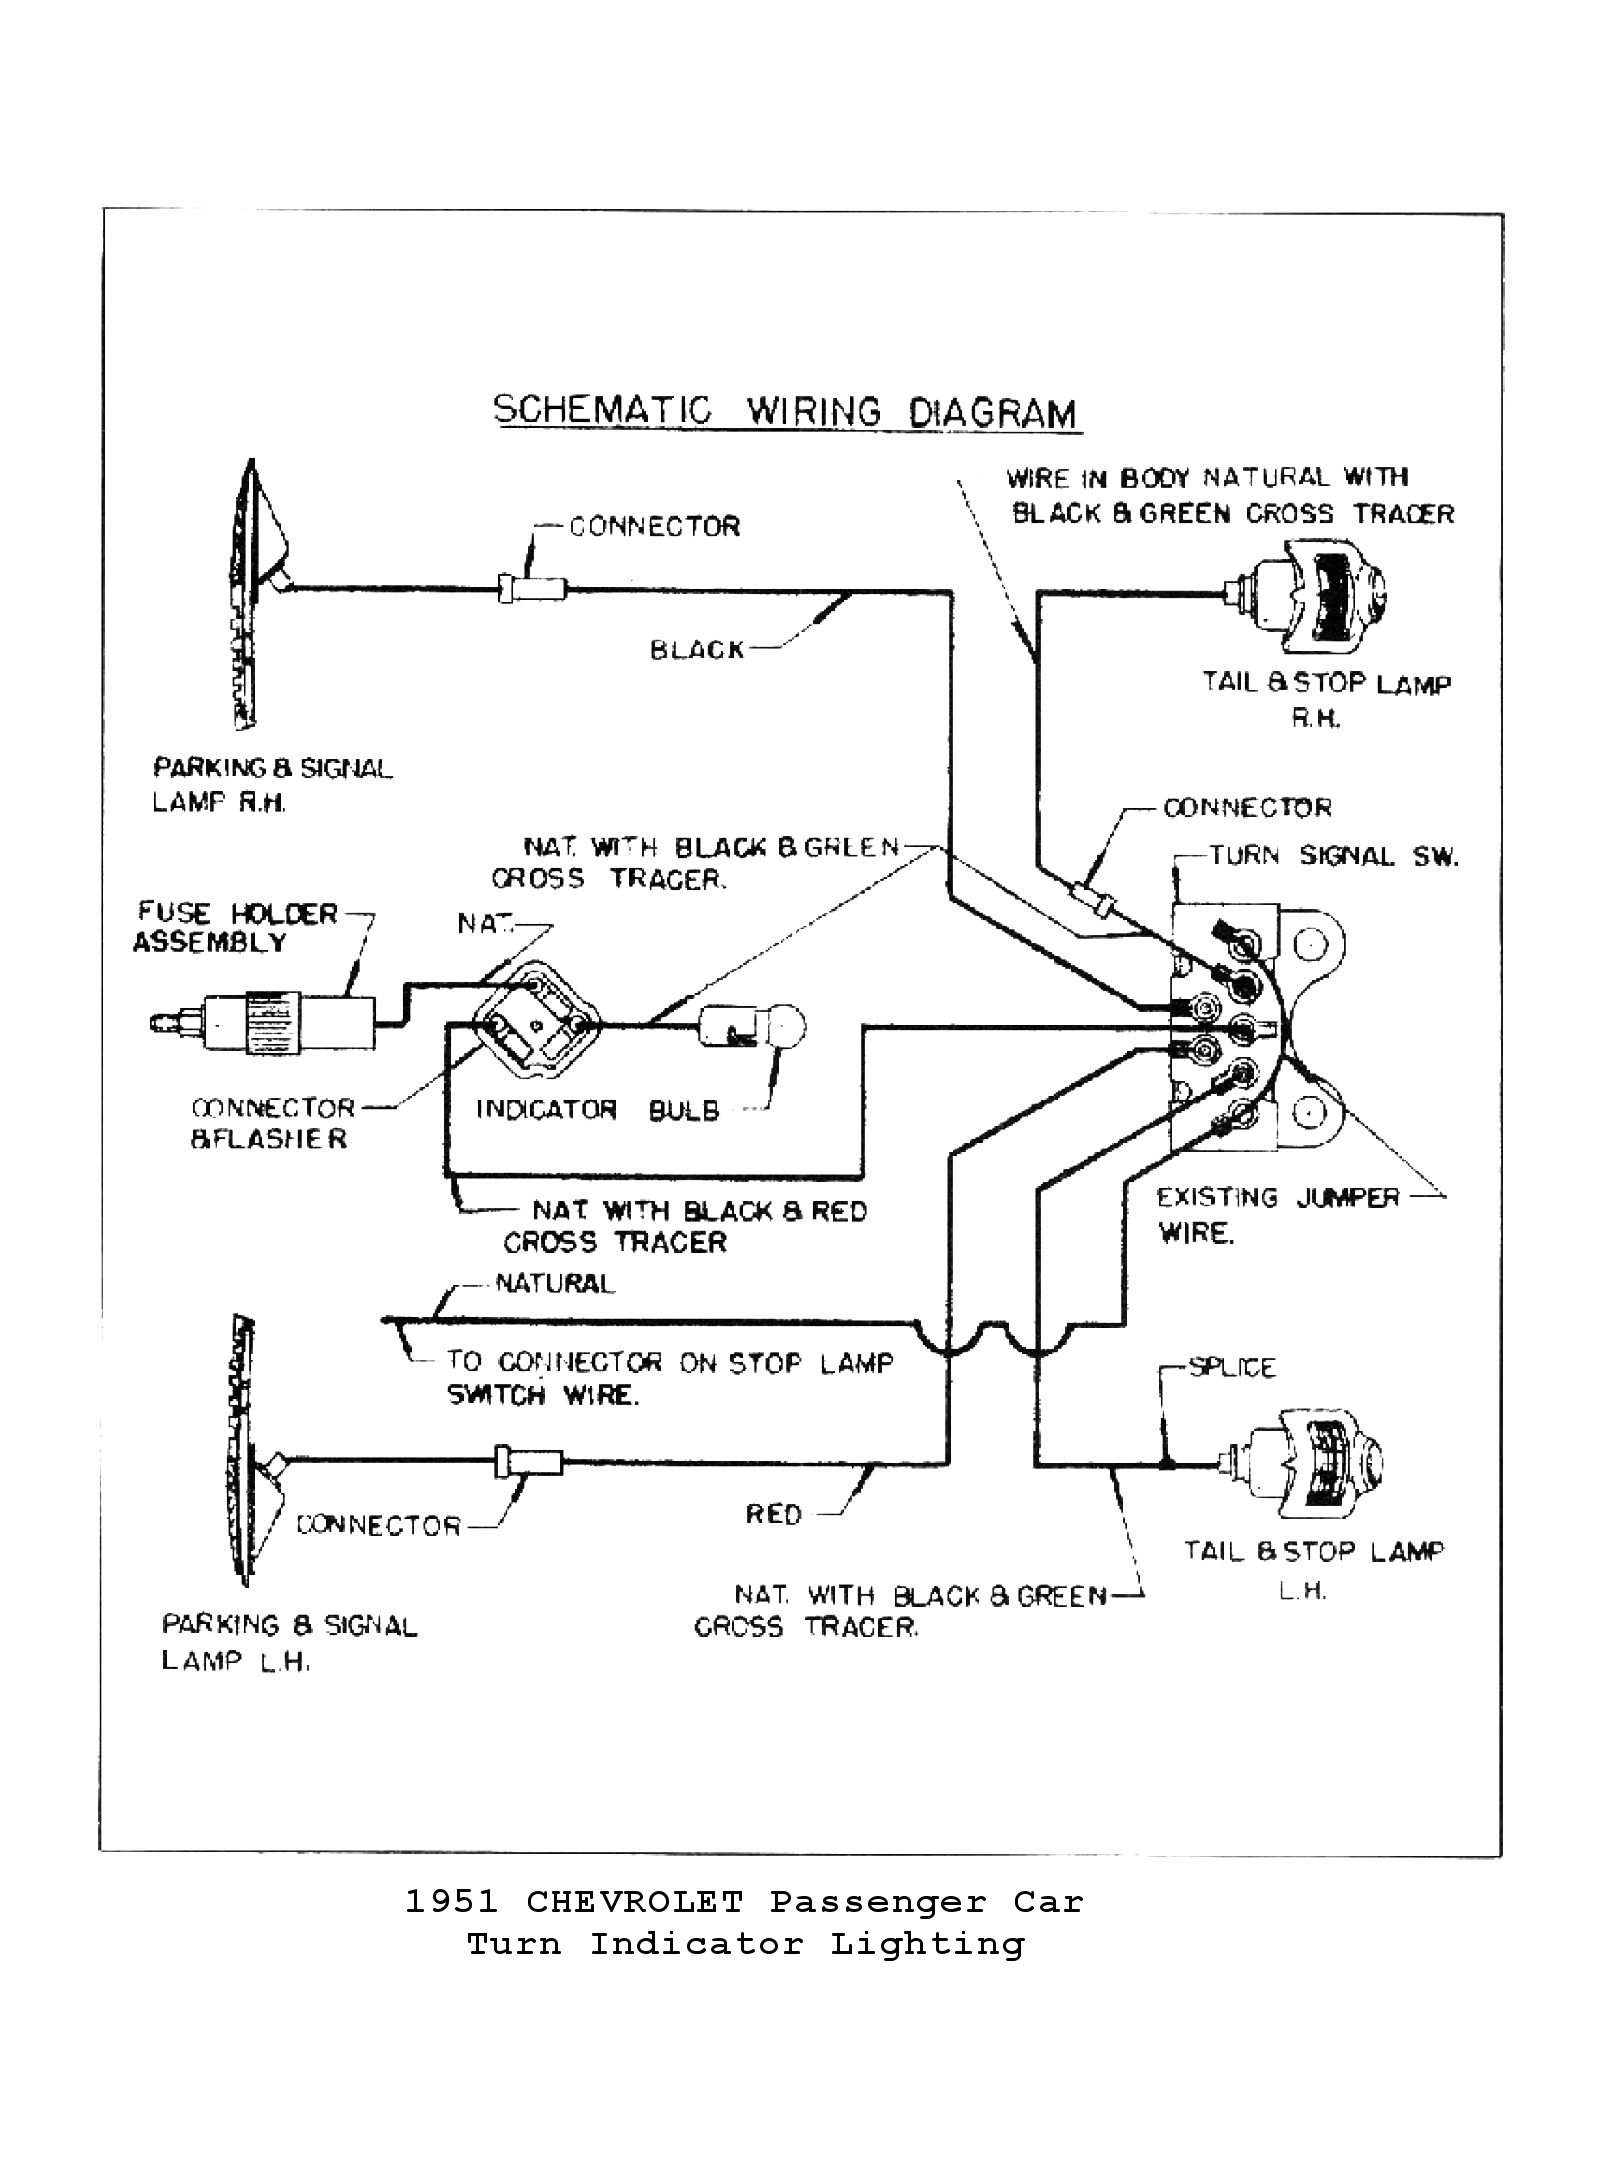 1955 chevy wire diagram wiring diagrams rh boltsoft net 2006 Chevy Truck Wiring Diagram 2006 Chevy Truck Wiring Diagram